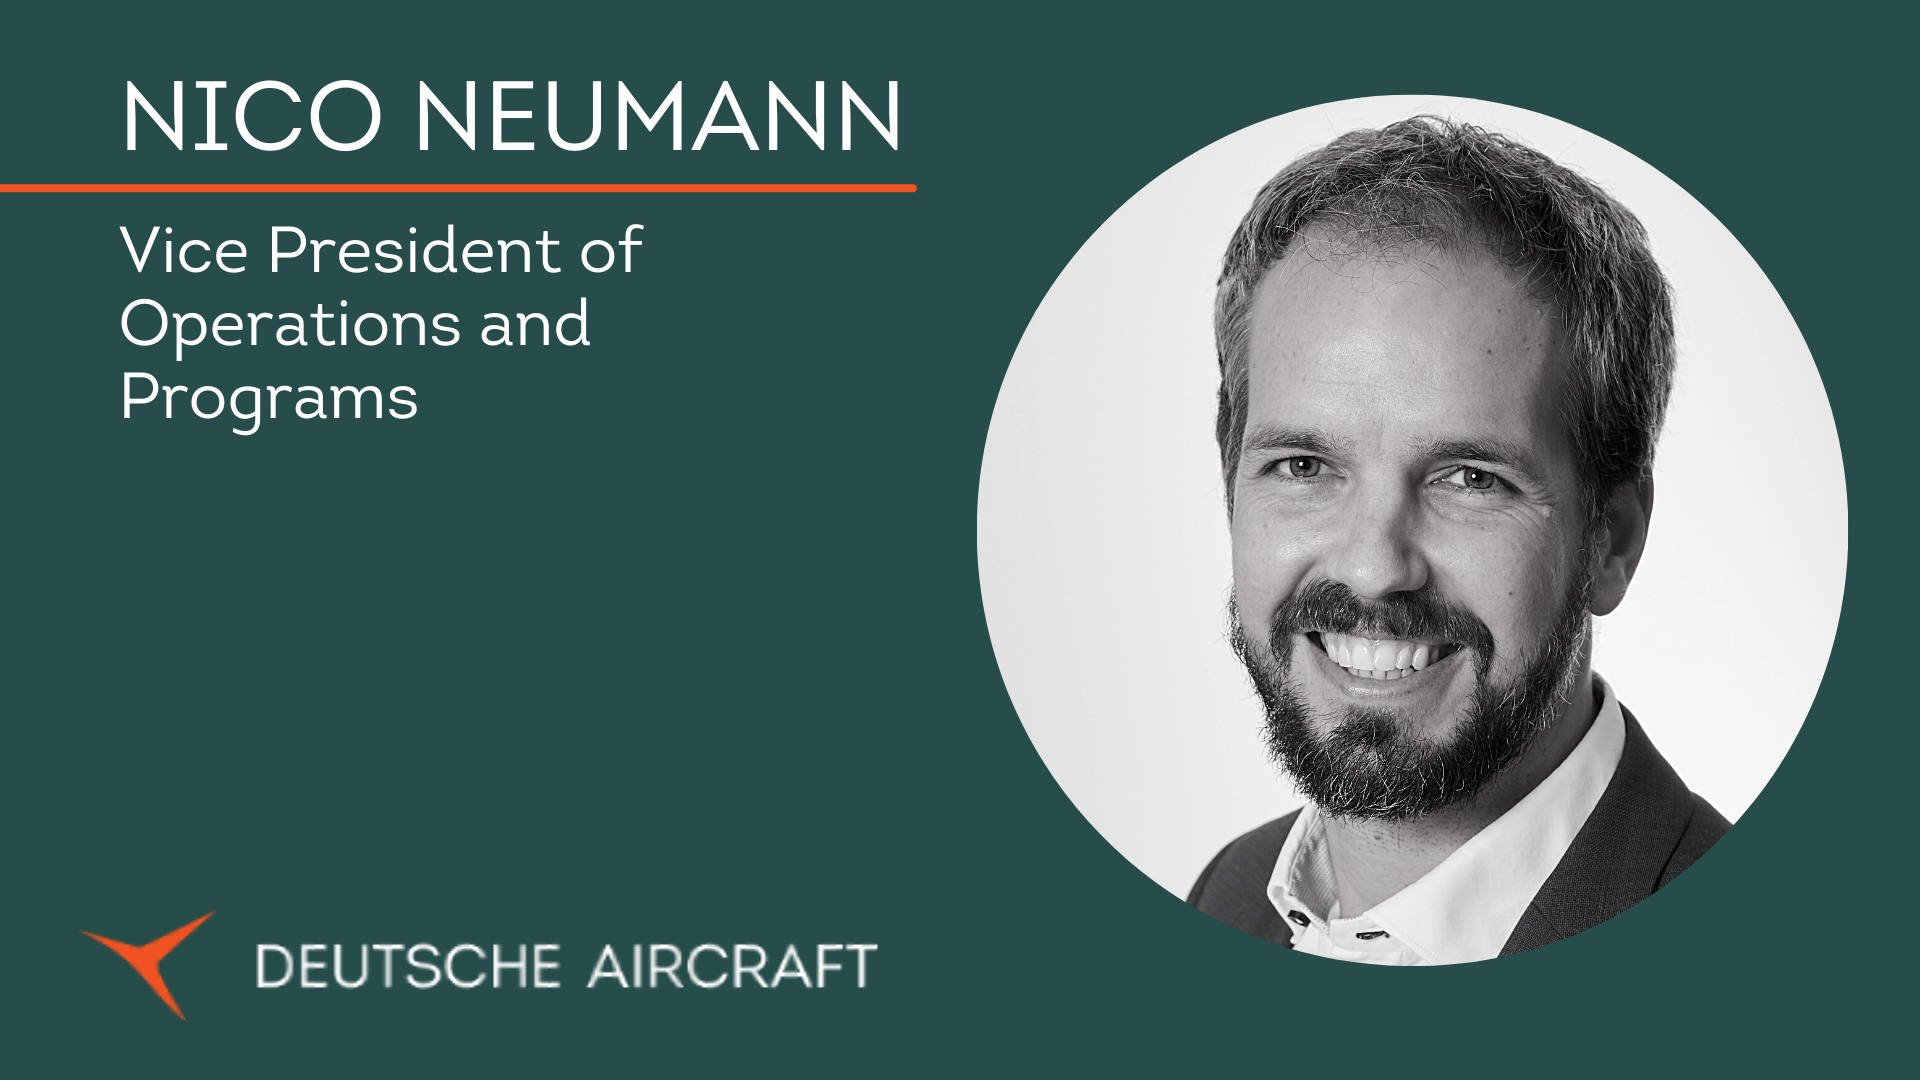 Vice President of Operations and Programs Nico Neumann